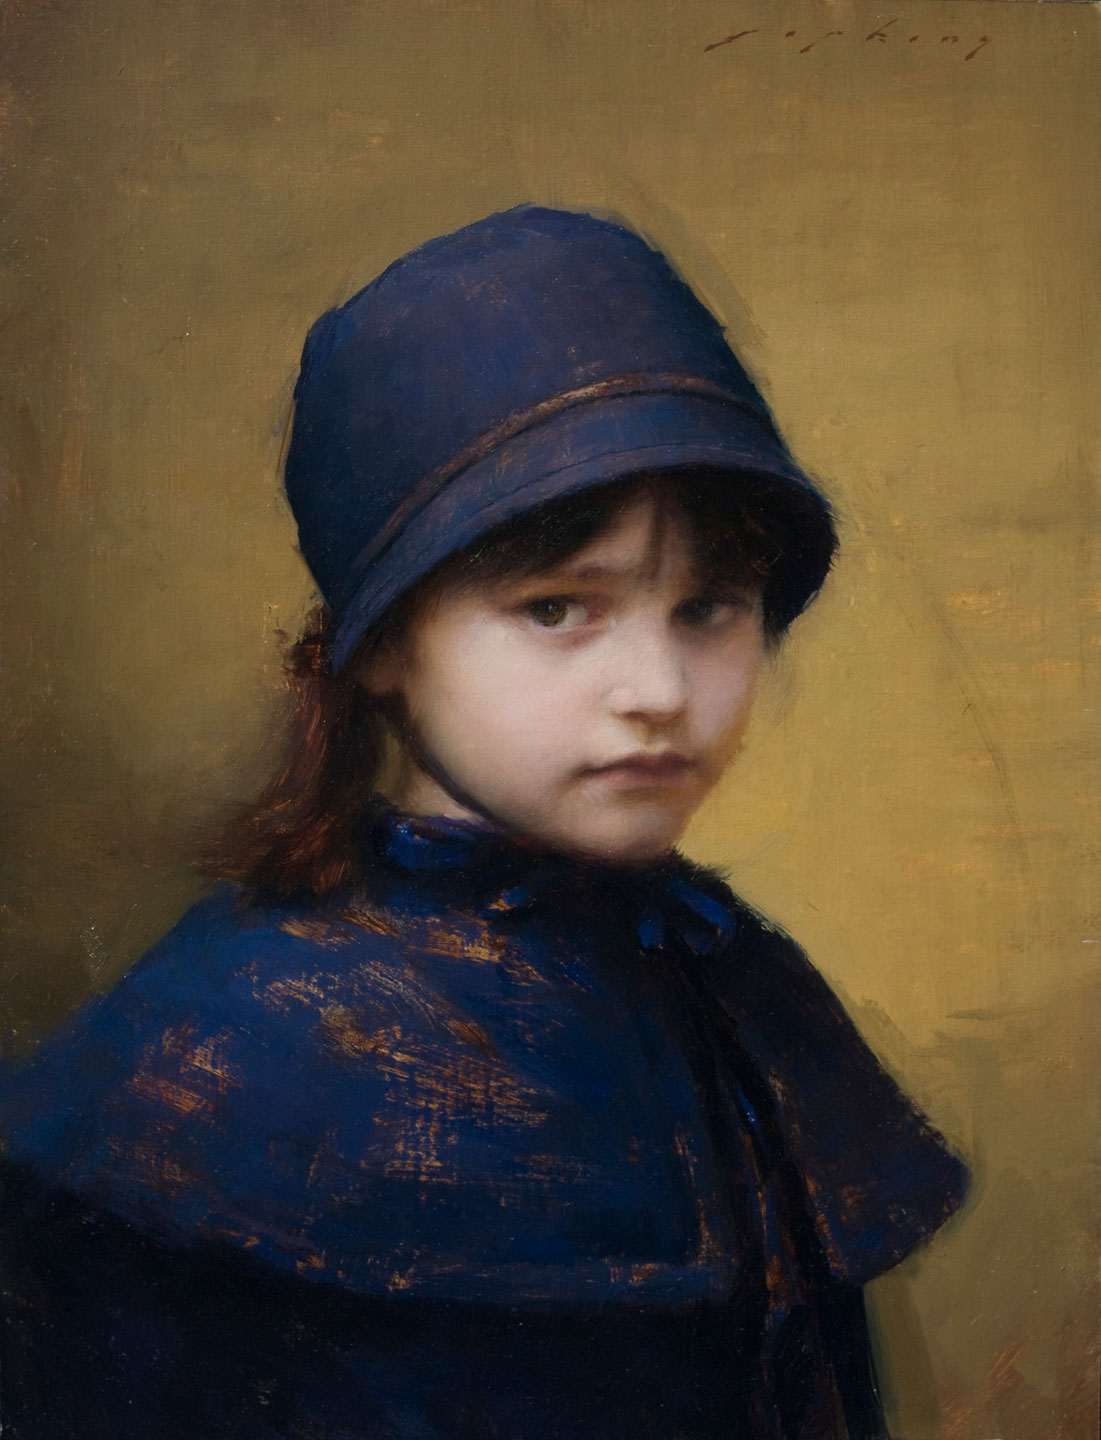 Skylar in Blue by Jeremy Lipking